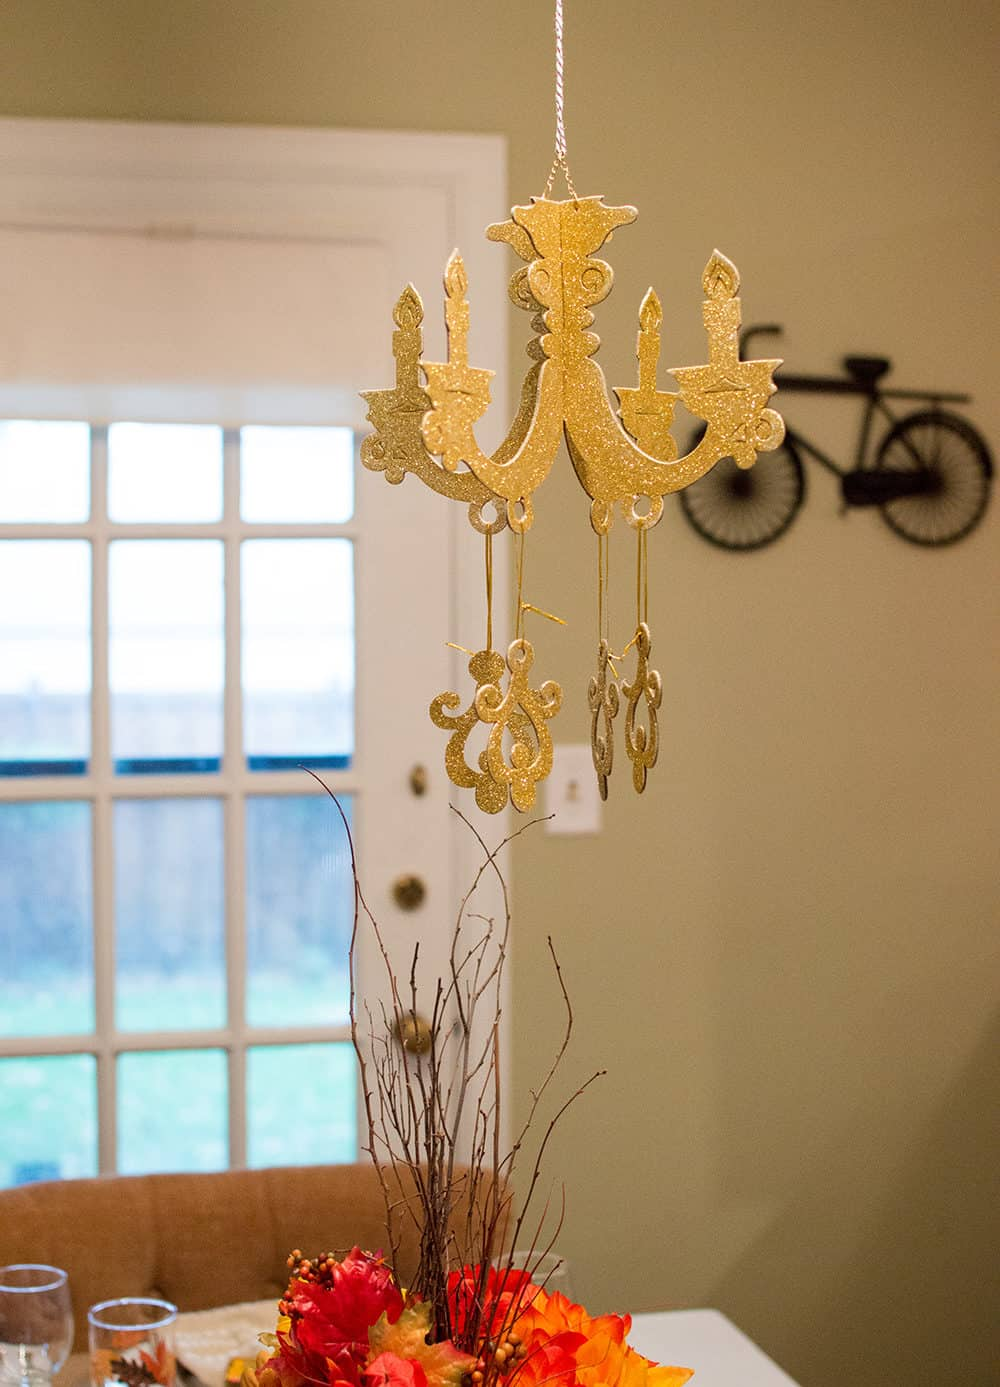 Gold Chandelier party prop from Oriental Trading